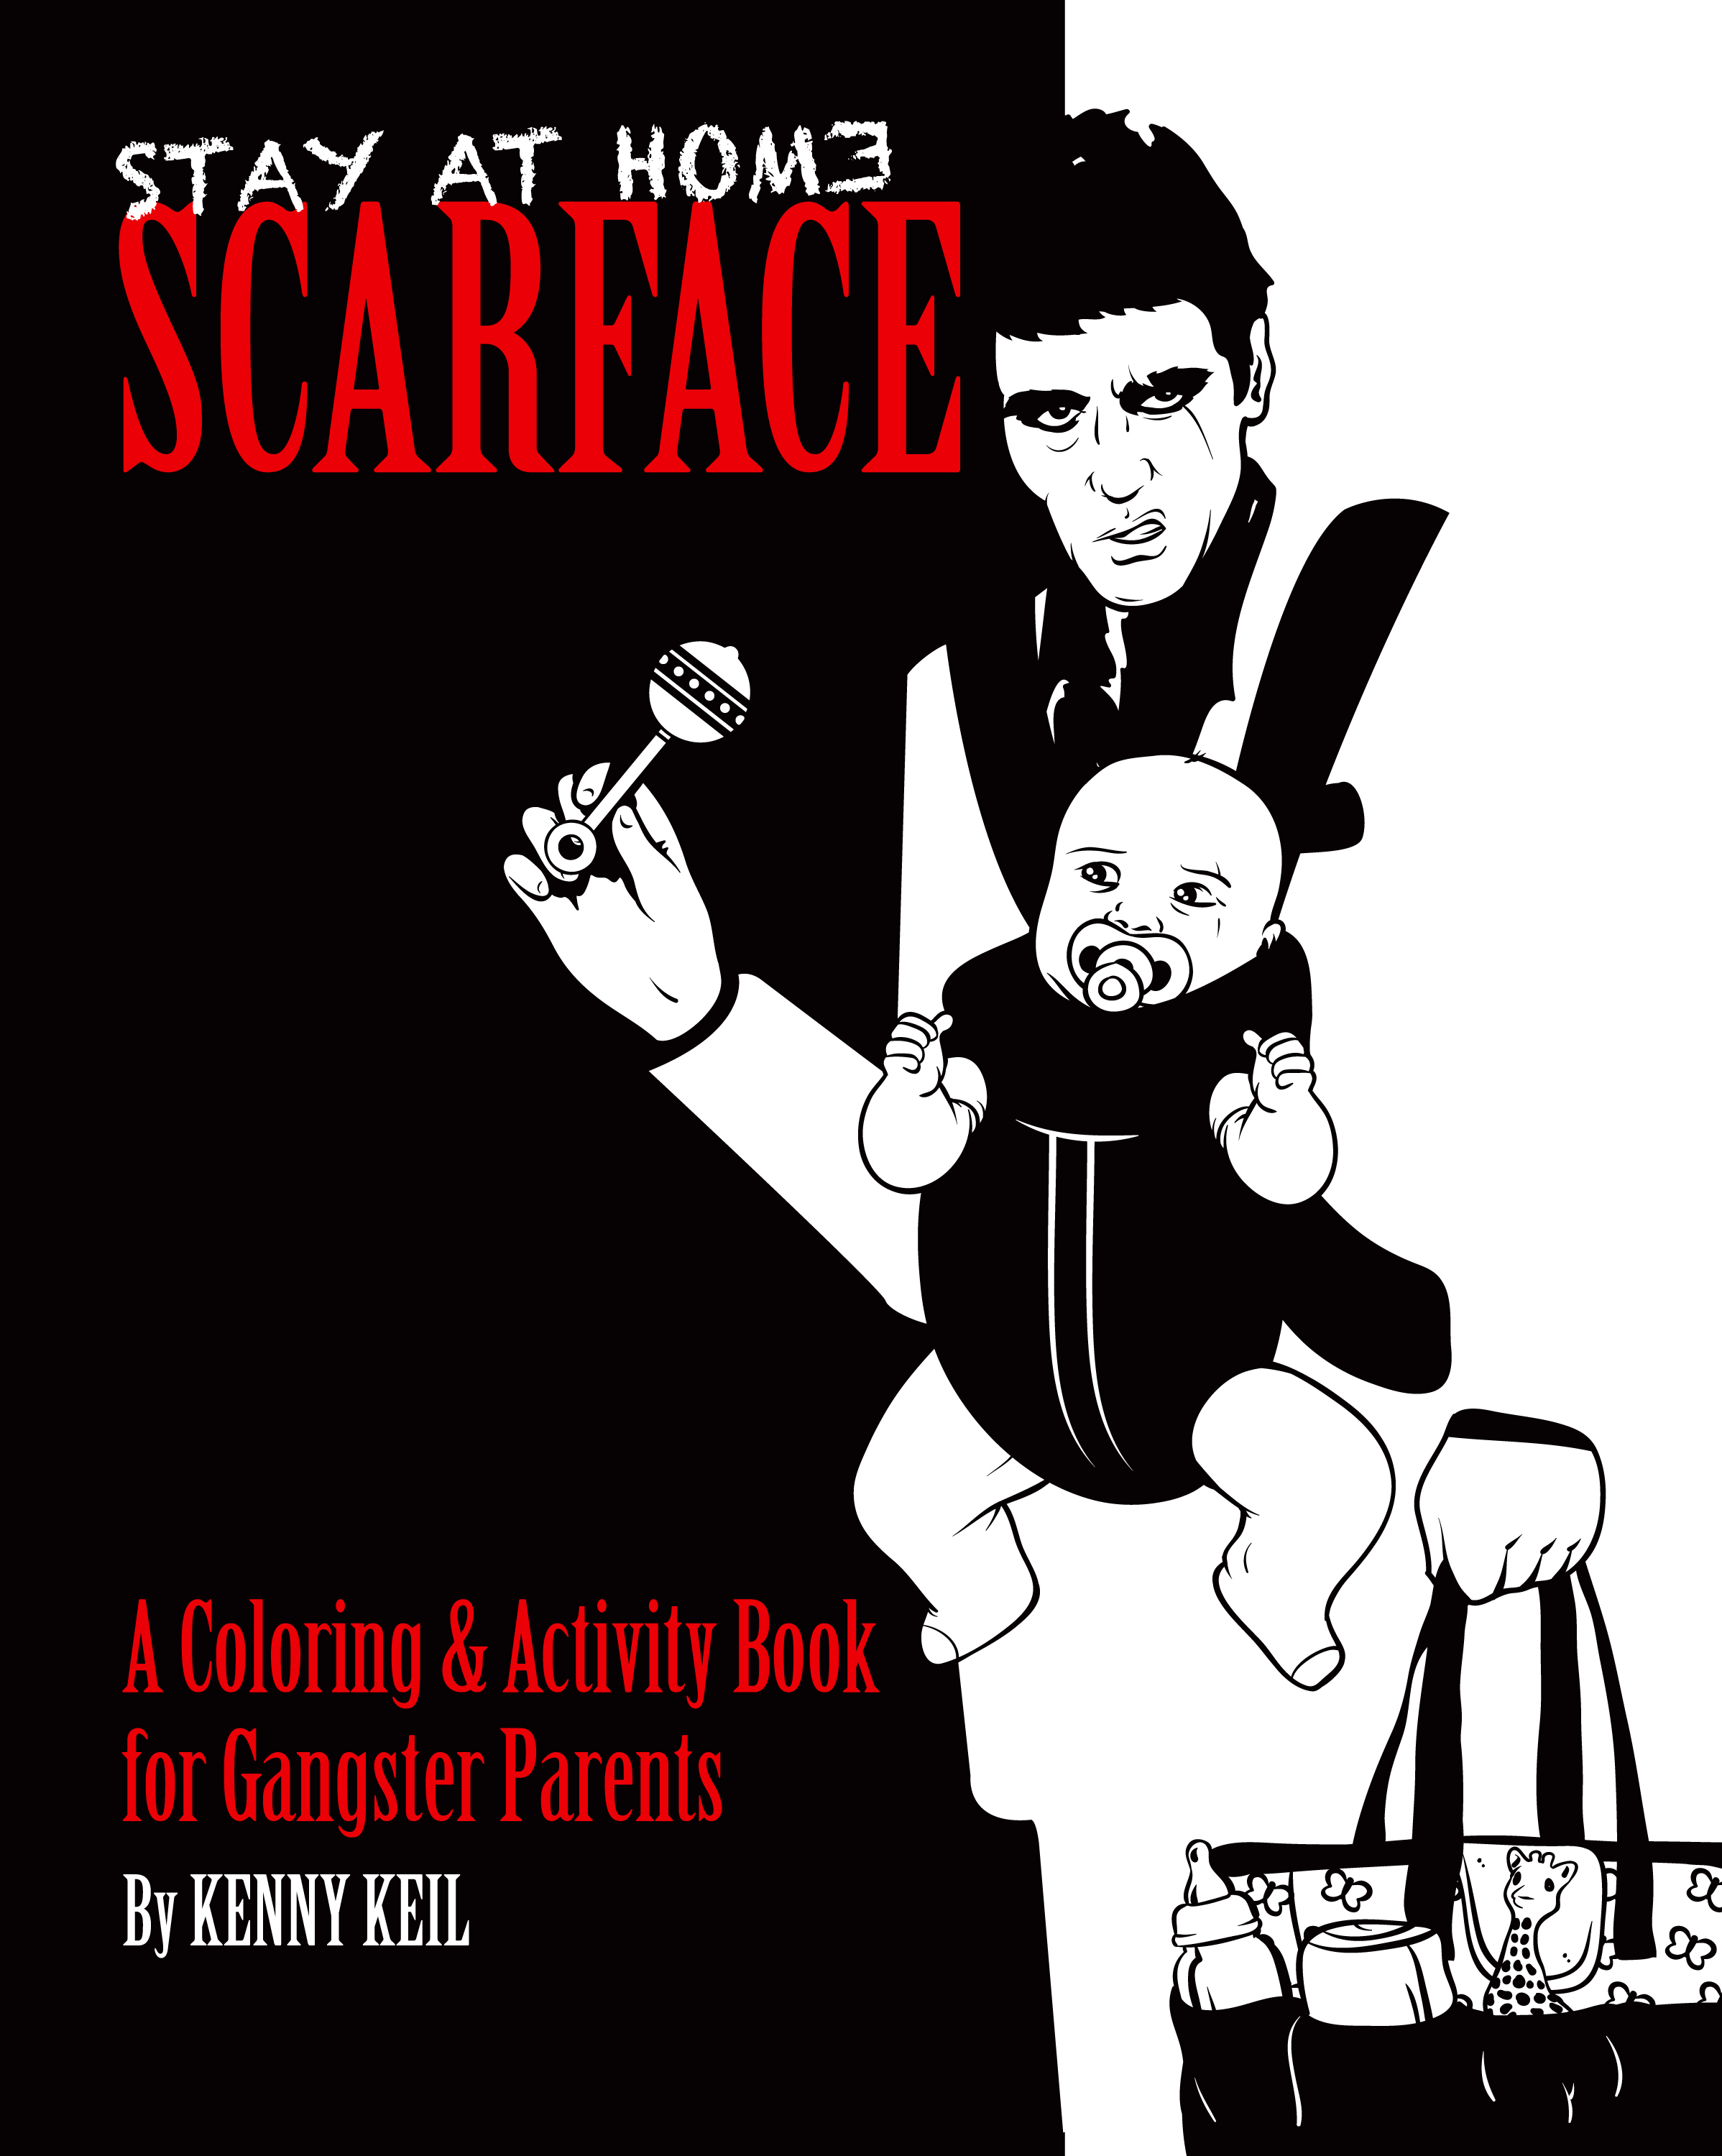 ScarfaceCover